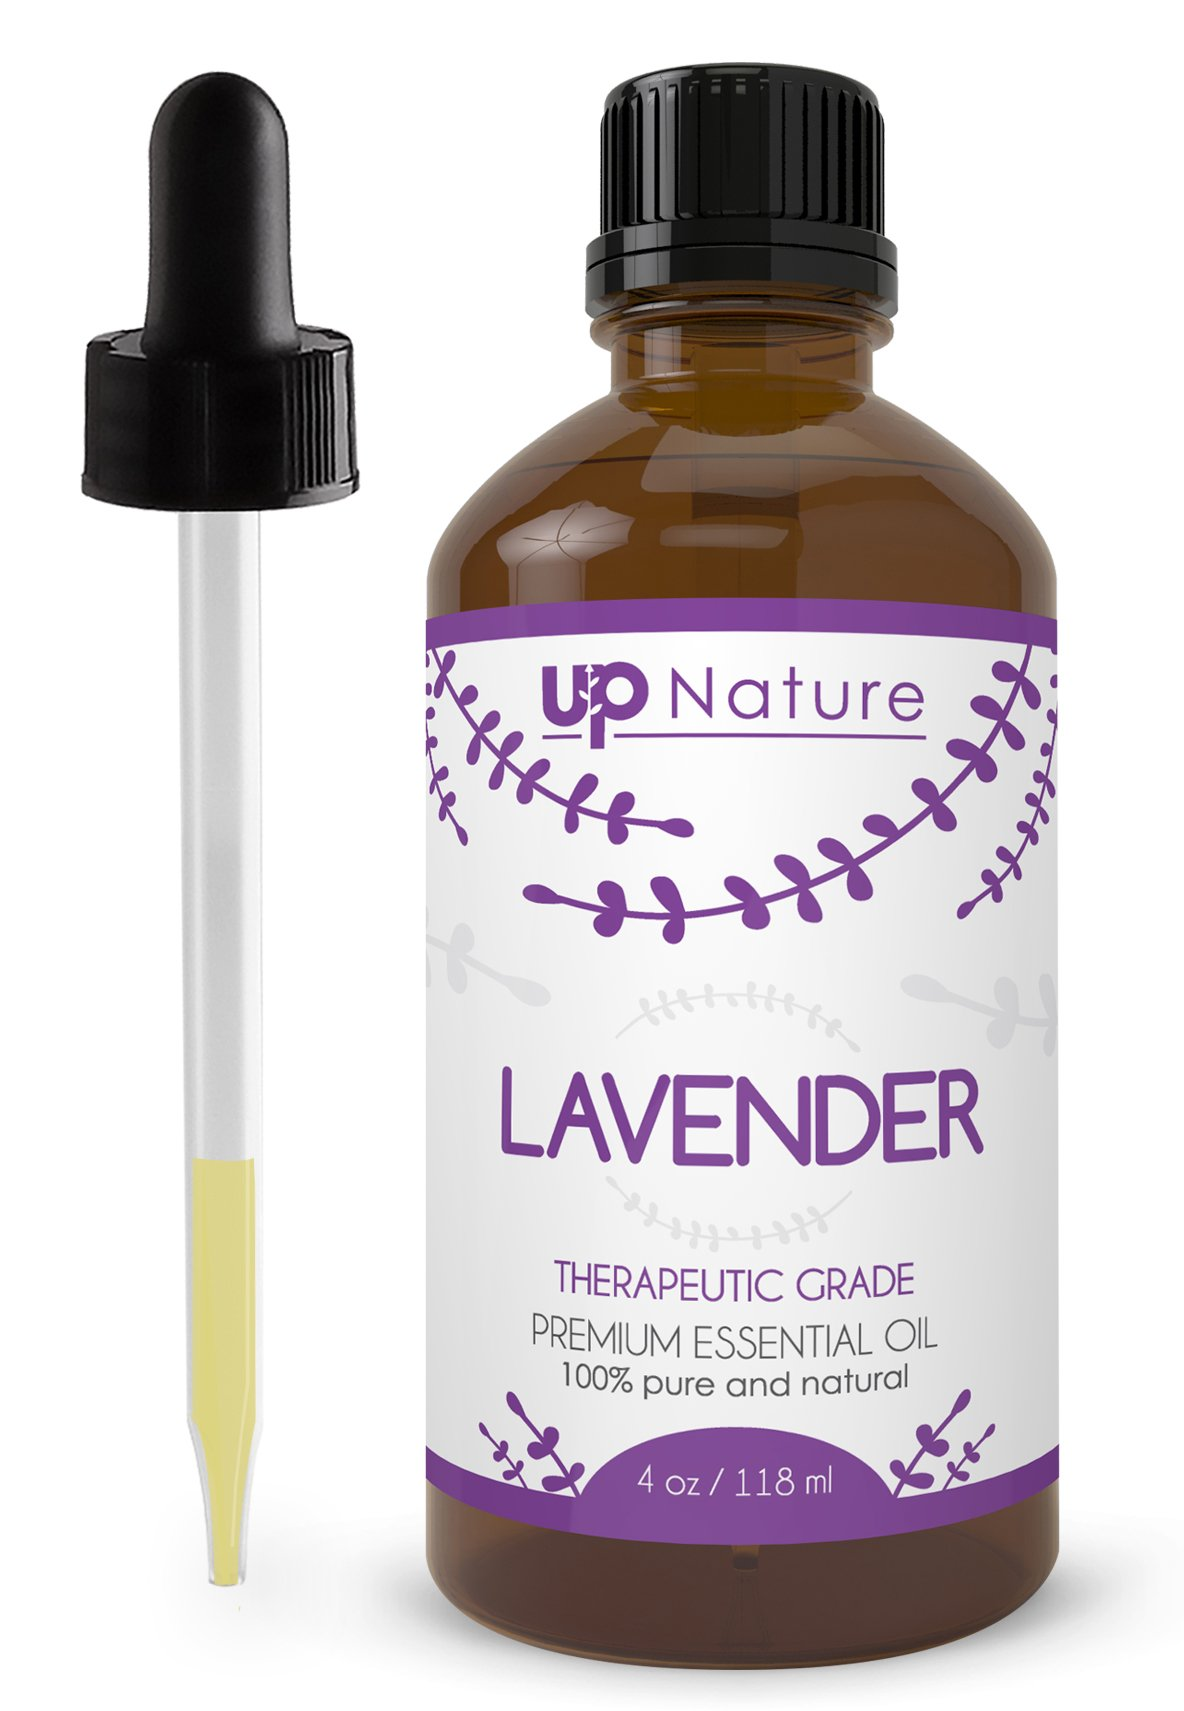 UpNature The Best Dutch Lavender Oil 4 OZ - 100% Pure & Natural, Undiluted & Unfiltered, Premium Quality With Glass Dropper - Perfect For Use For Hair, Diffuser, Scalp, Skin, Sleep